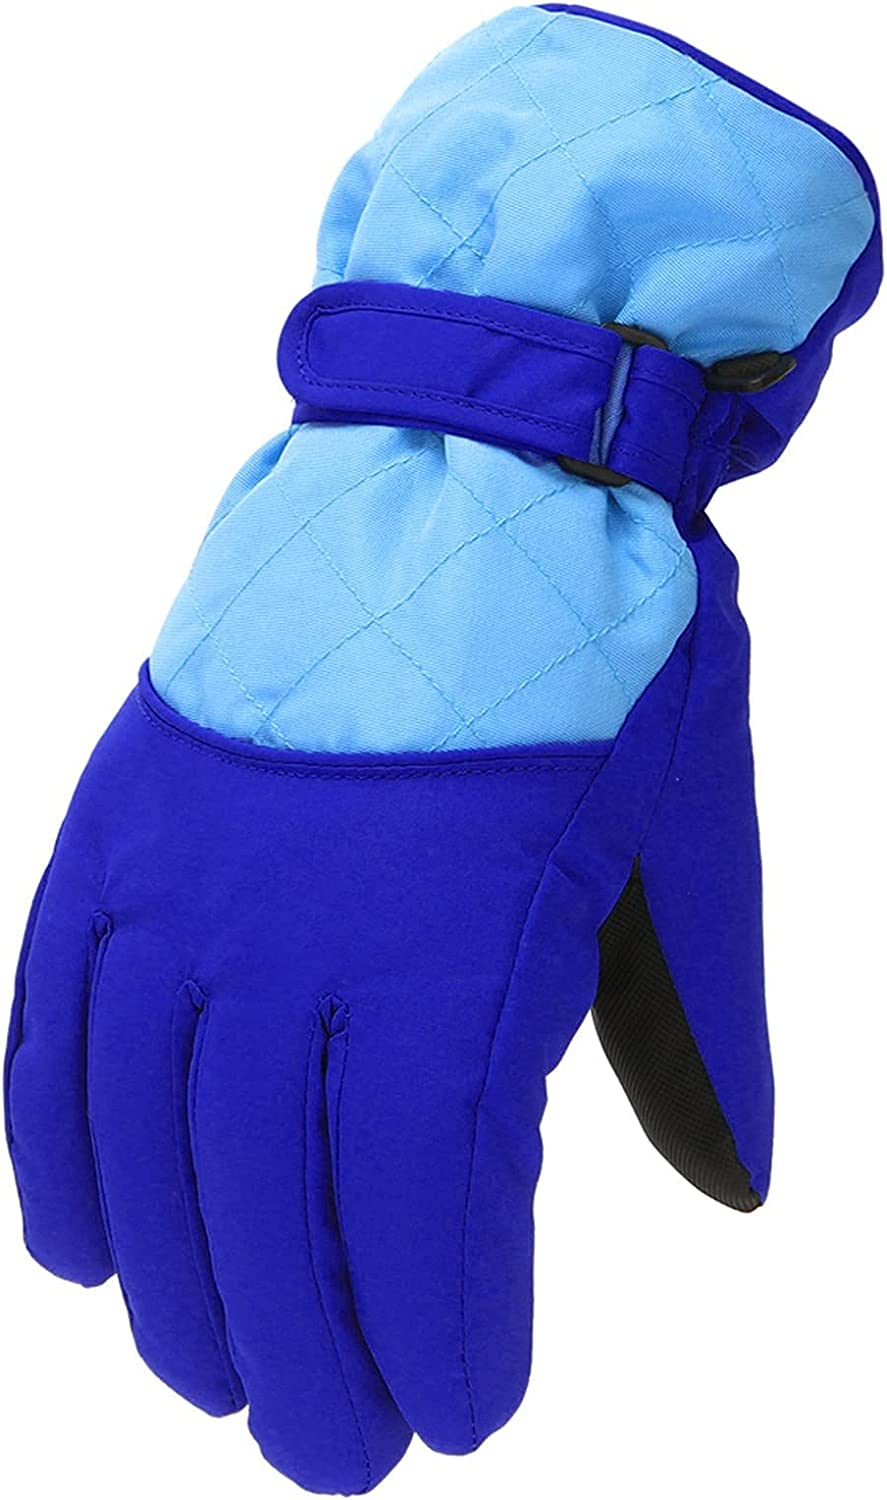 Winter Gloves Thinsulate Insulated Waterproof Ski Thermal Gloves Snowboard Driving Fleece Snow Gloves Cold Weather Gloves Age 6-11 Years for Kids